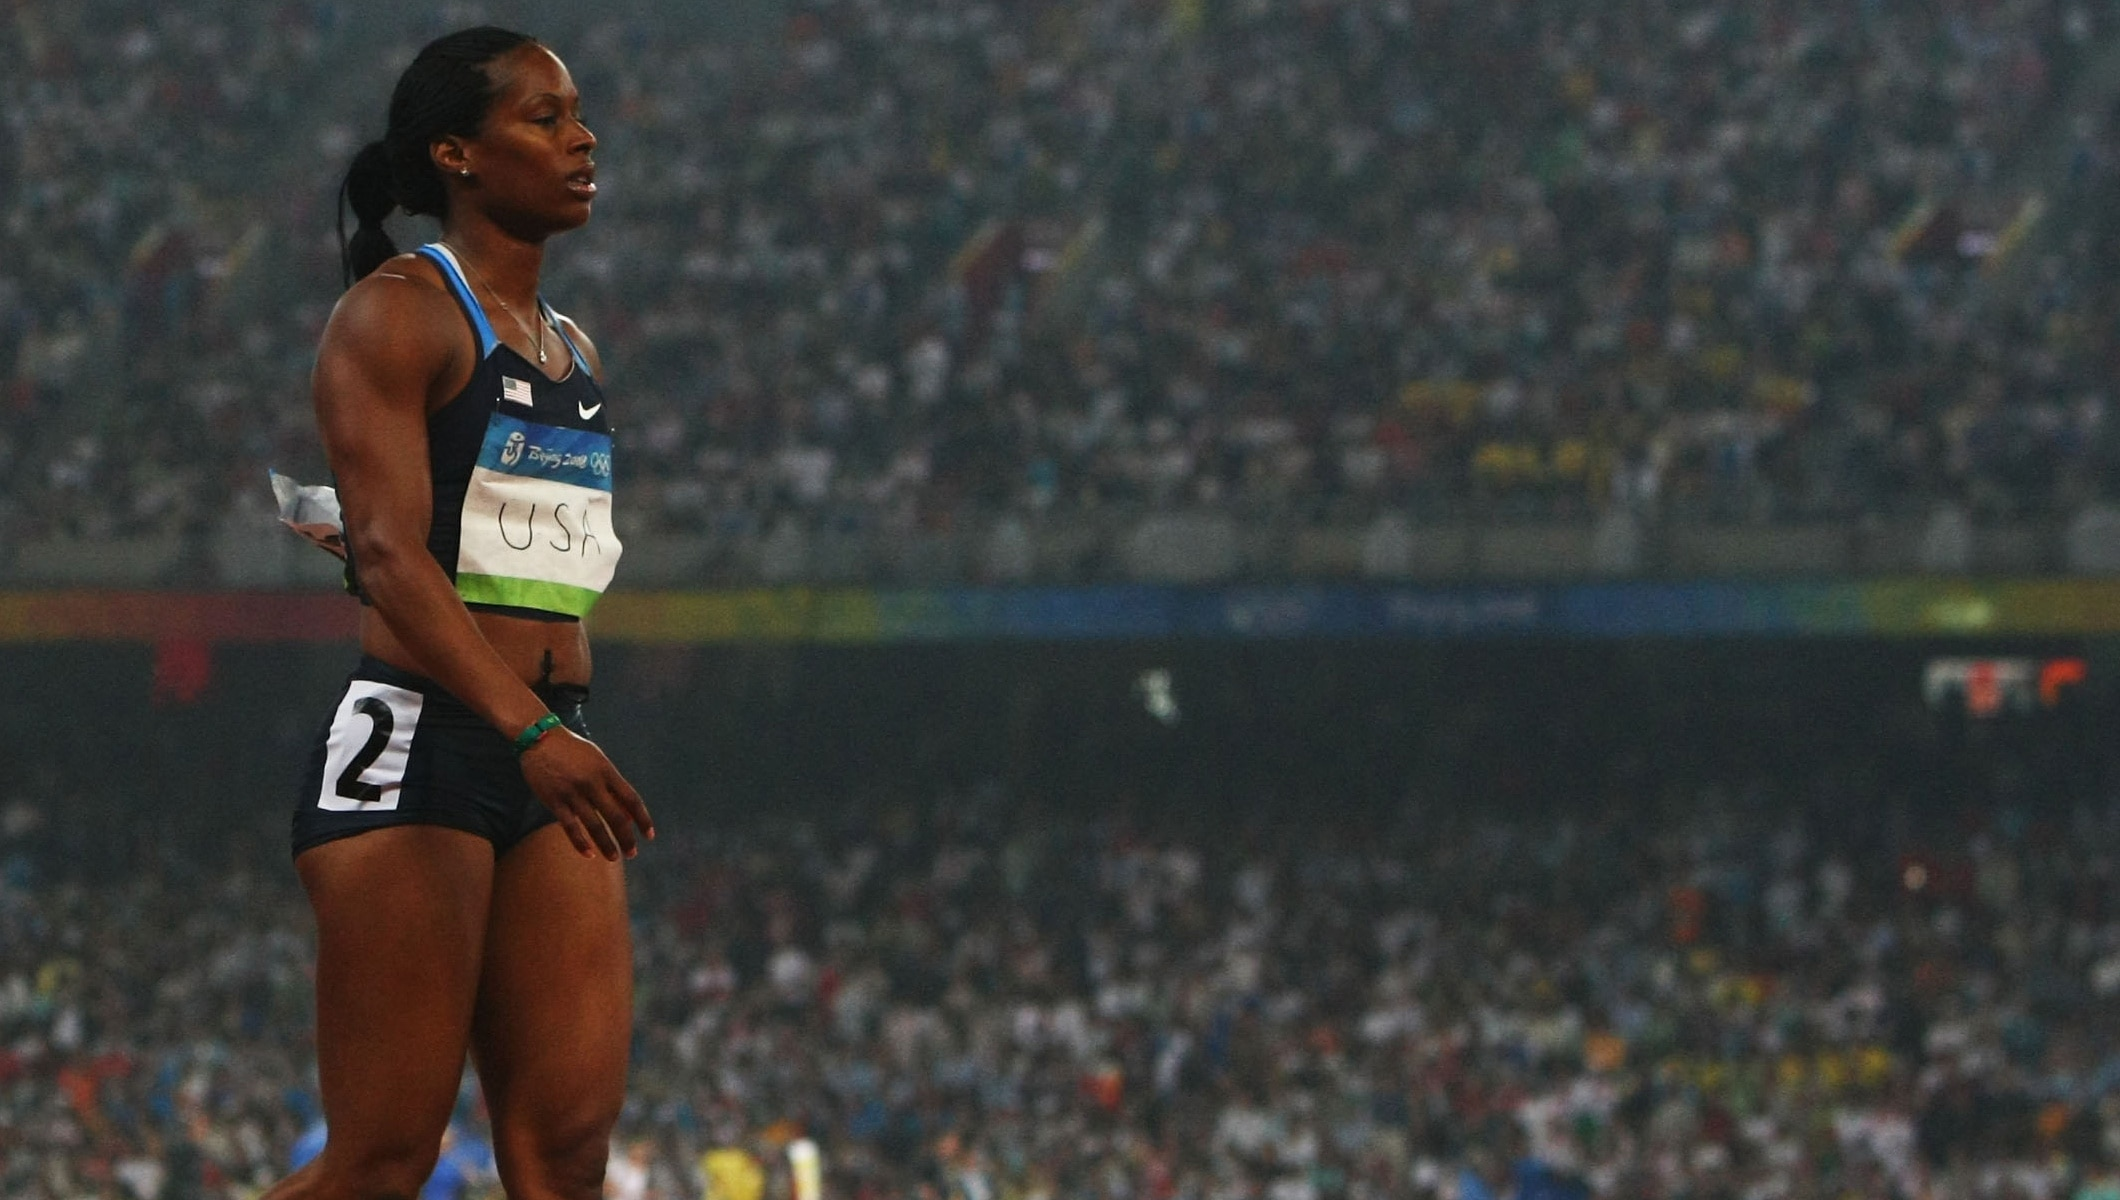 Mechelle Lewis of the United States at Beijing 2008